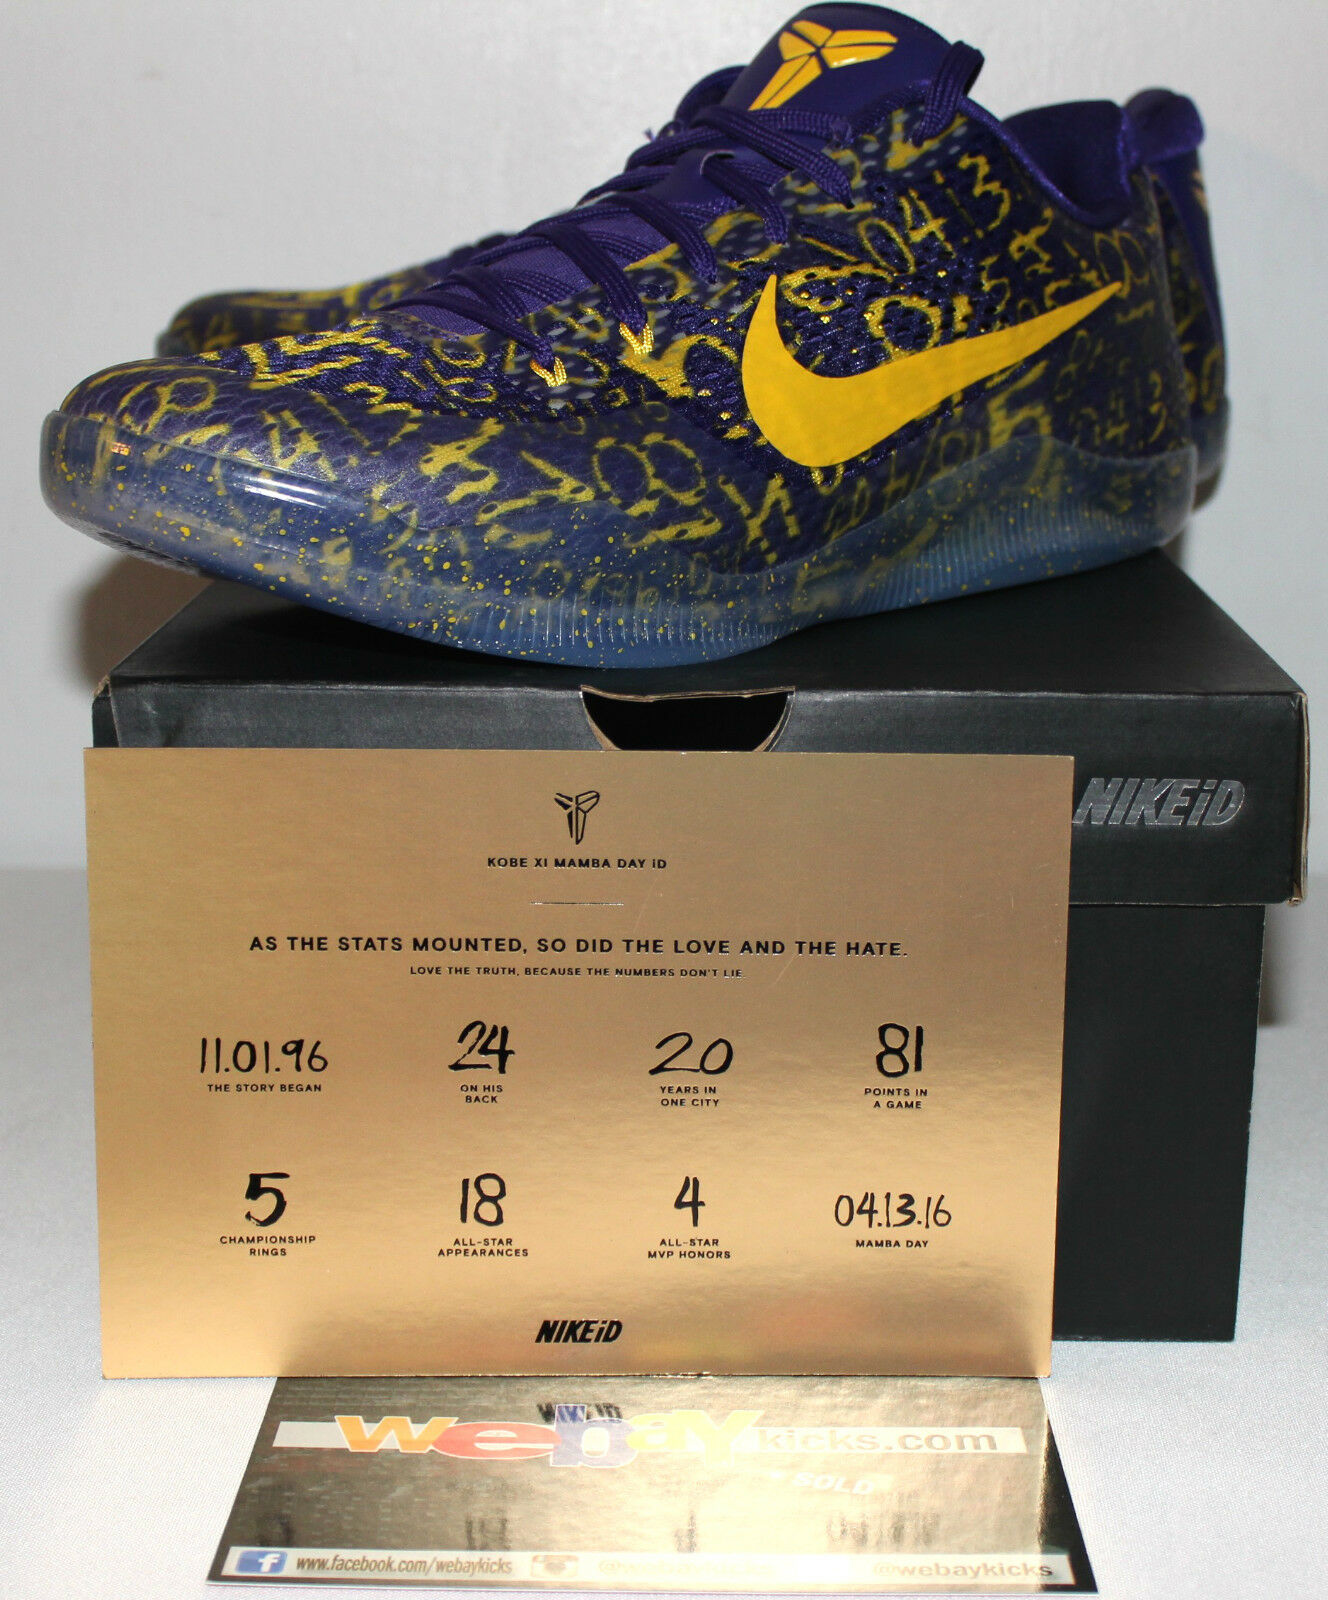 Nike Air Kobe 11 XI Black Yellow Mamba Days FTB Purple Yellow Black Sneakers Mens Size 13 New 08bda4